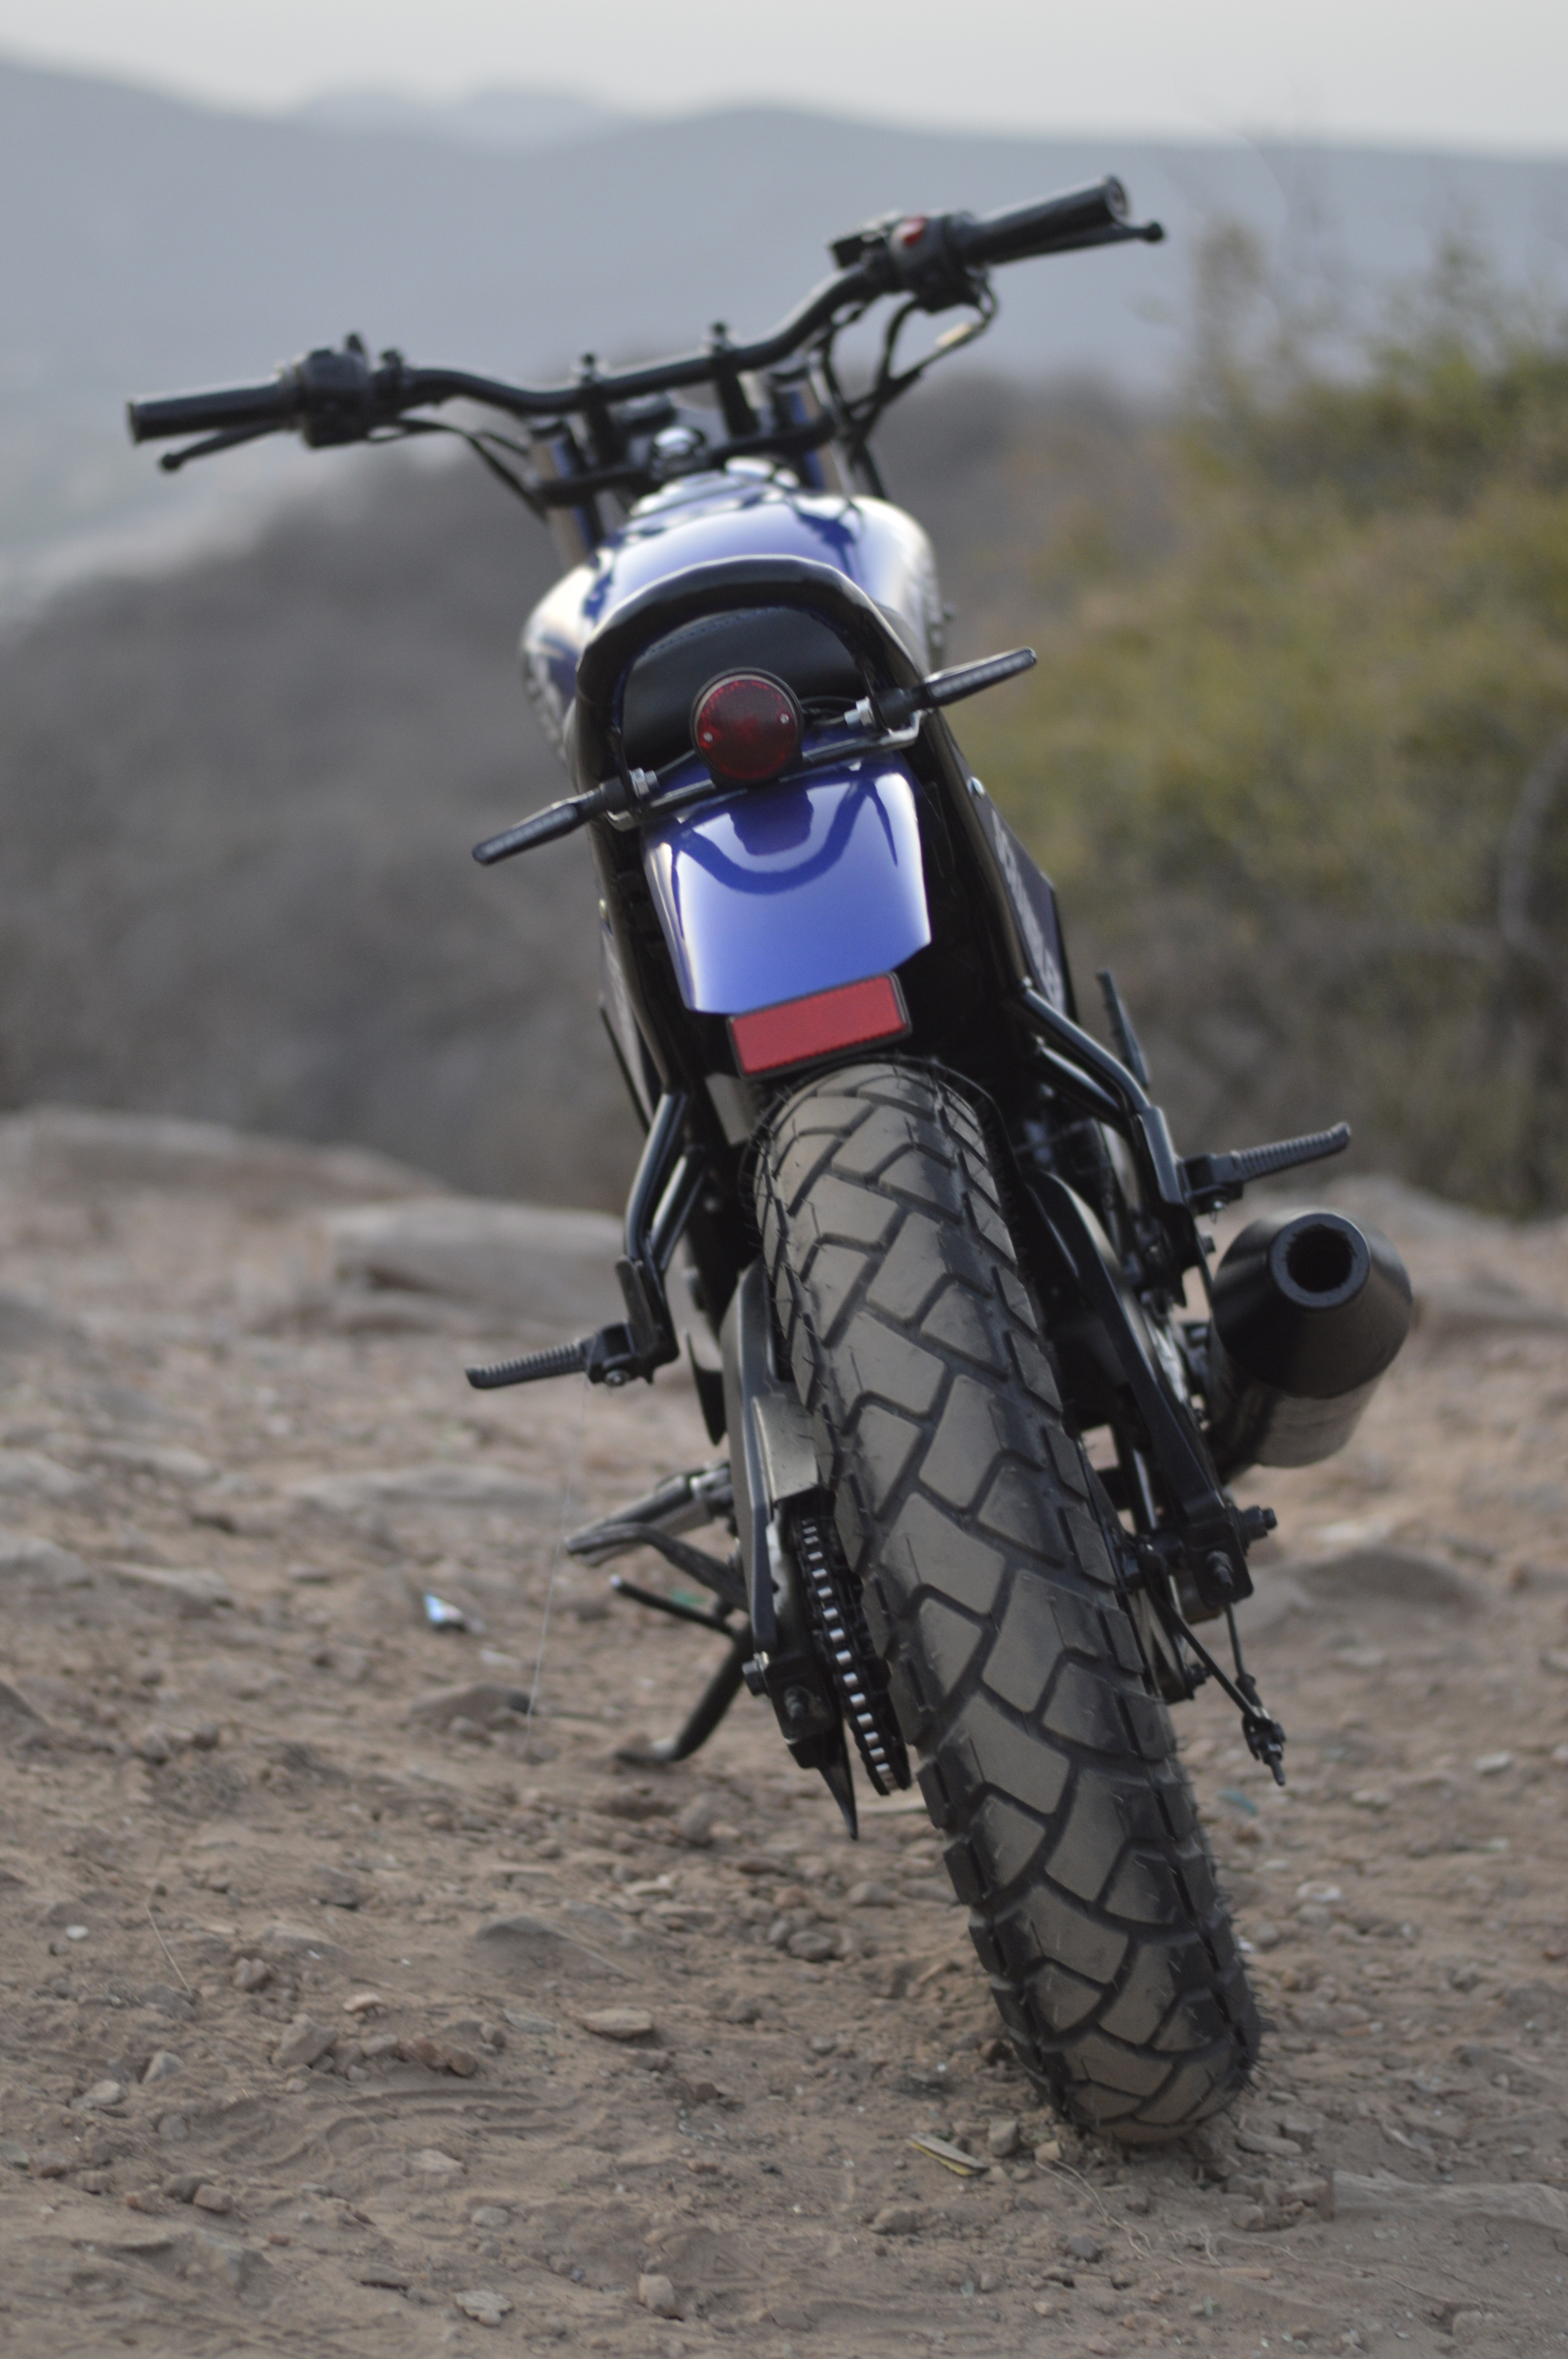 Yamaha FZ scrambler Modified